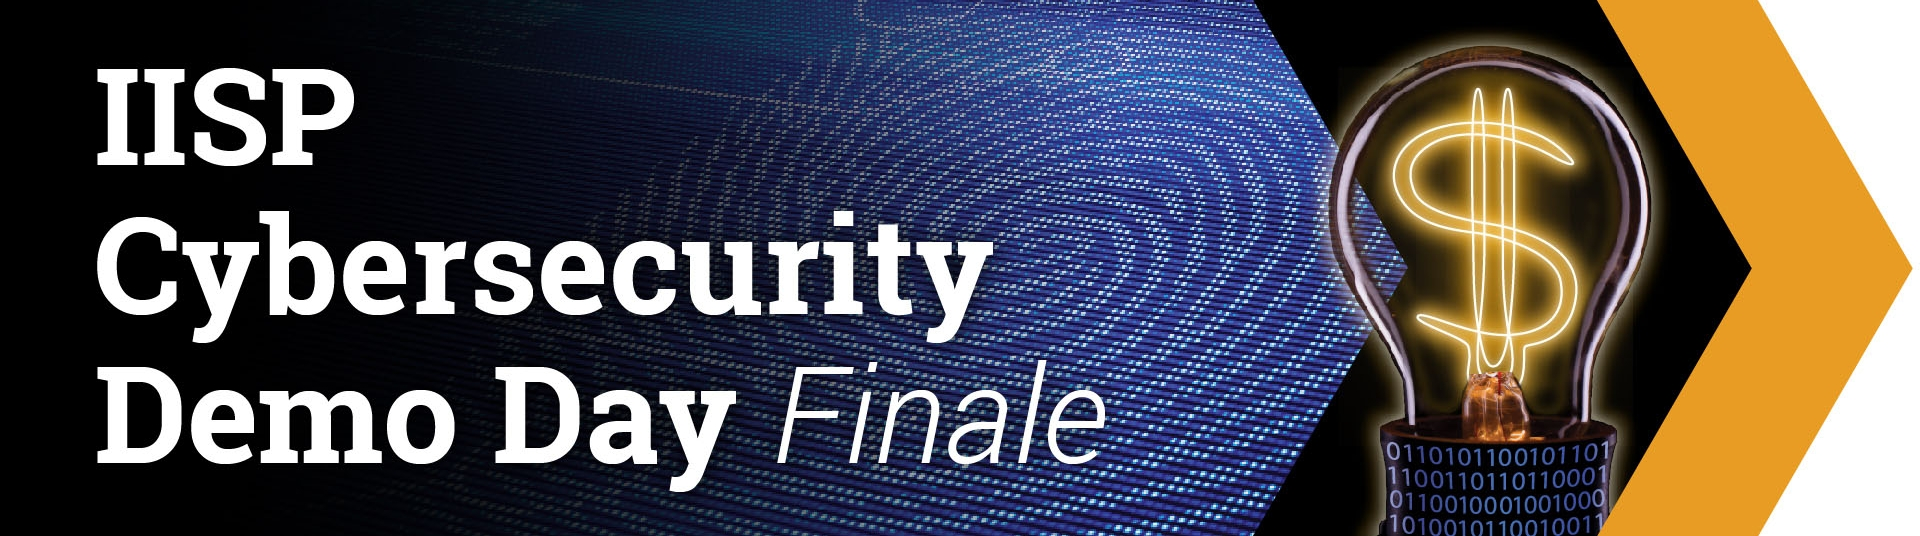 Cybersecurity Demo Day Finale